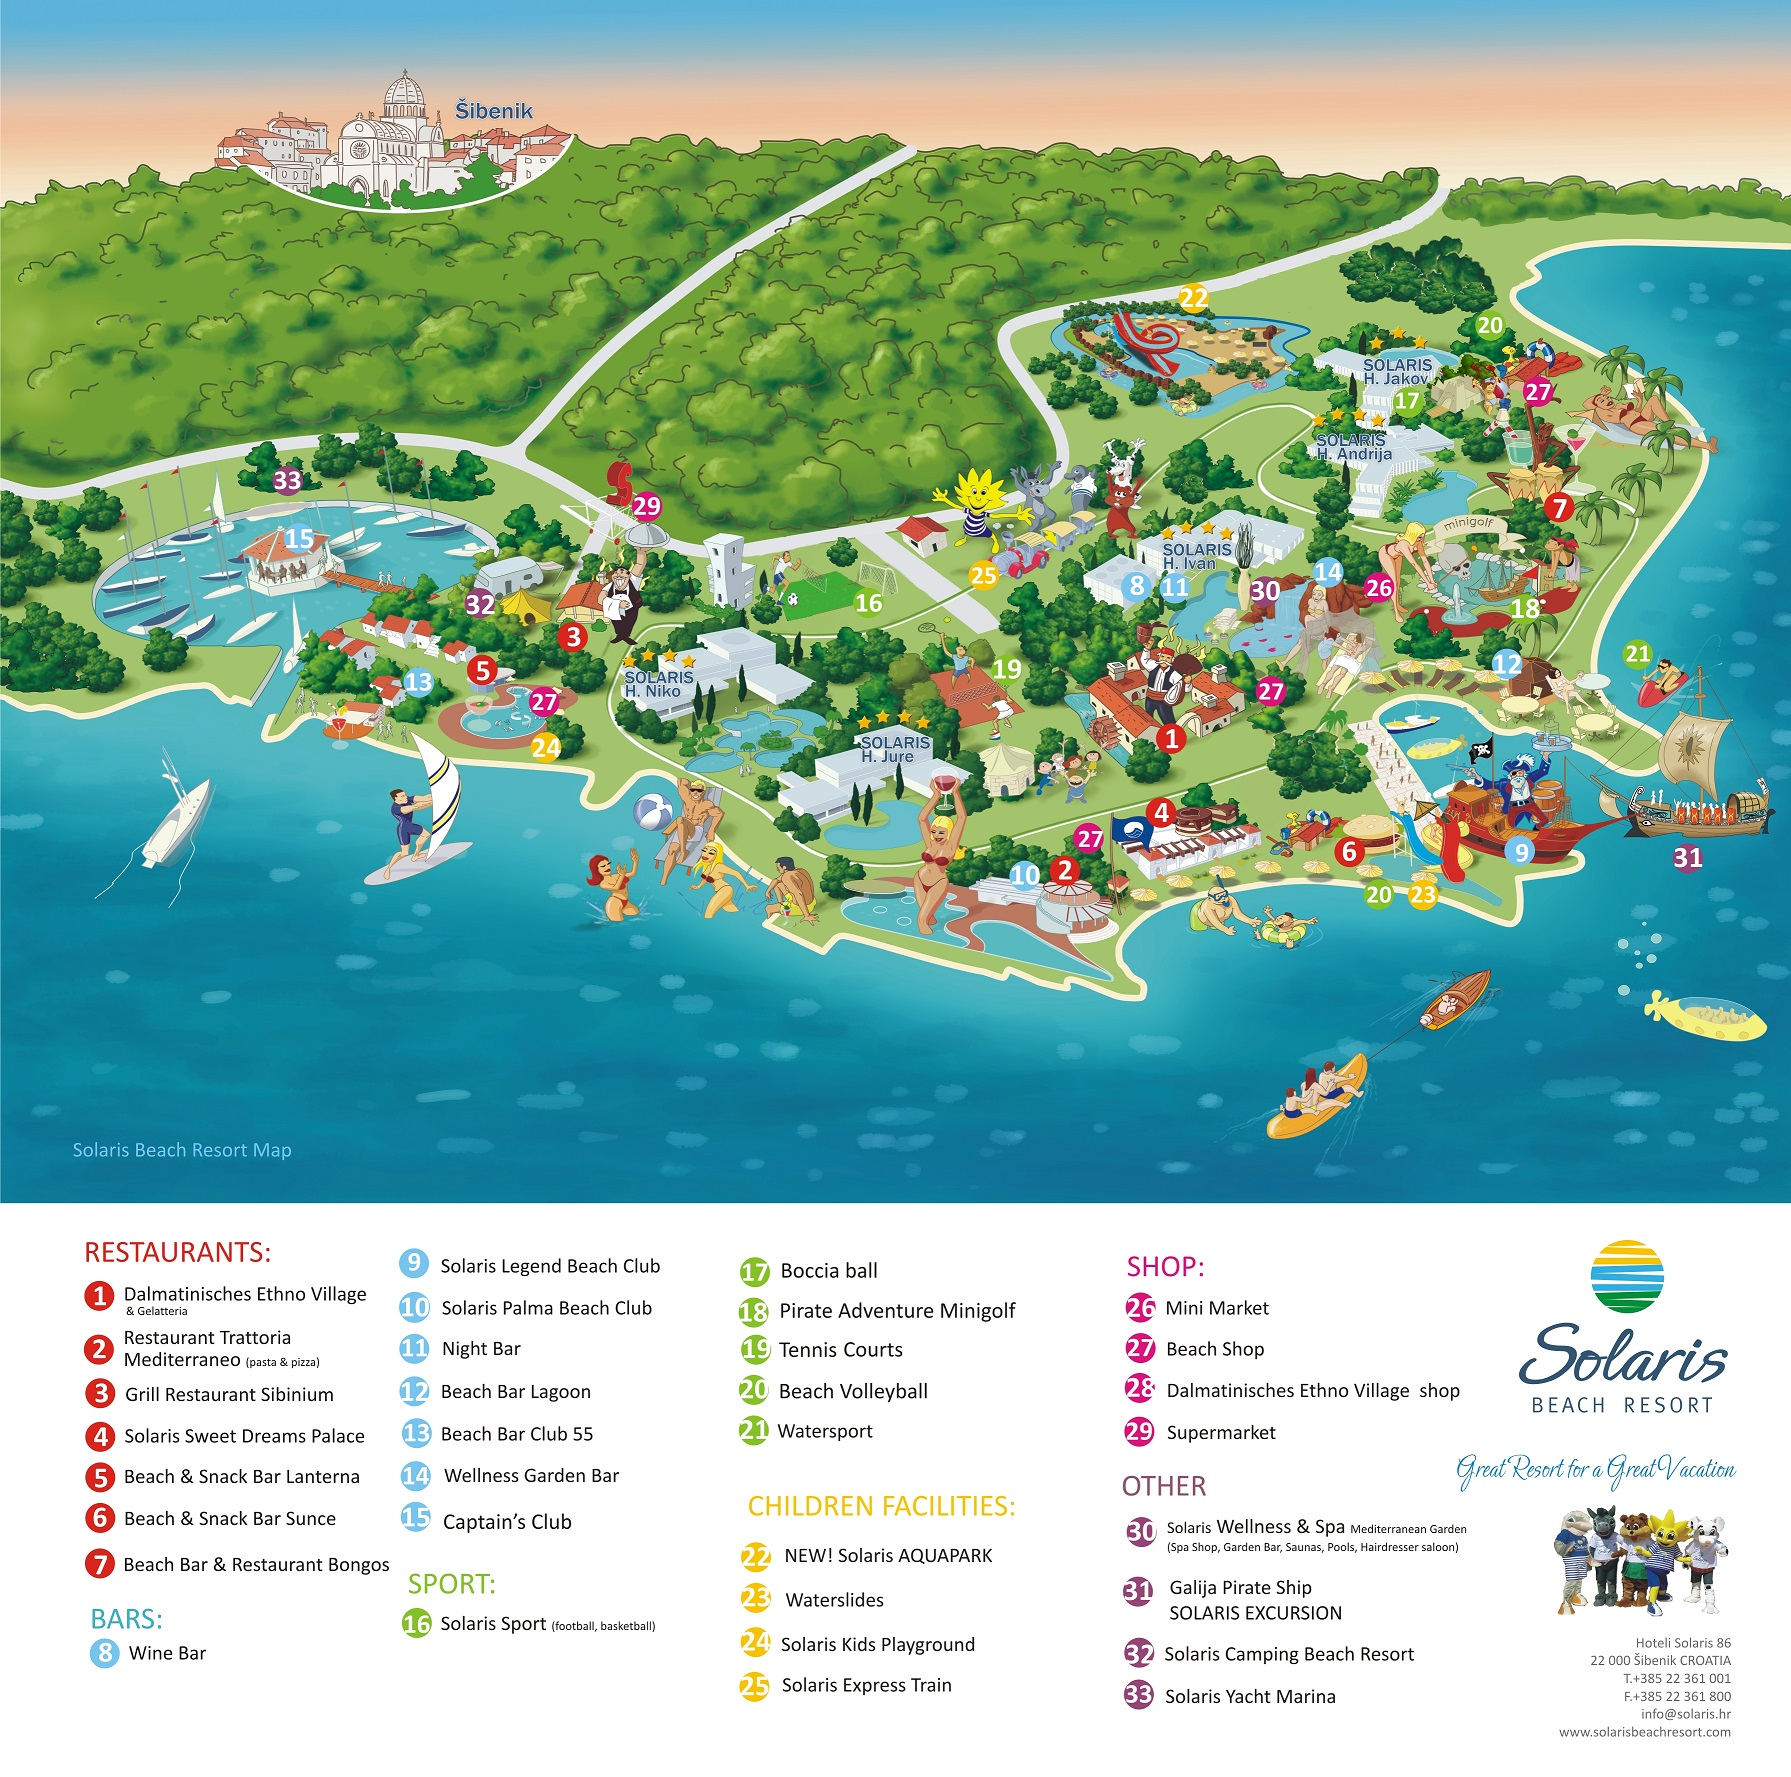 Solaris Resort Map - 2014